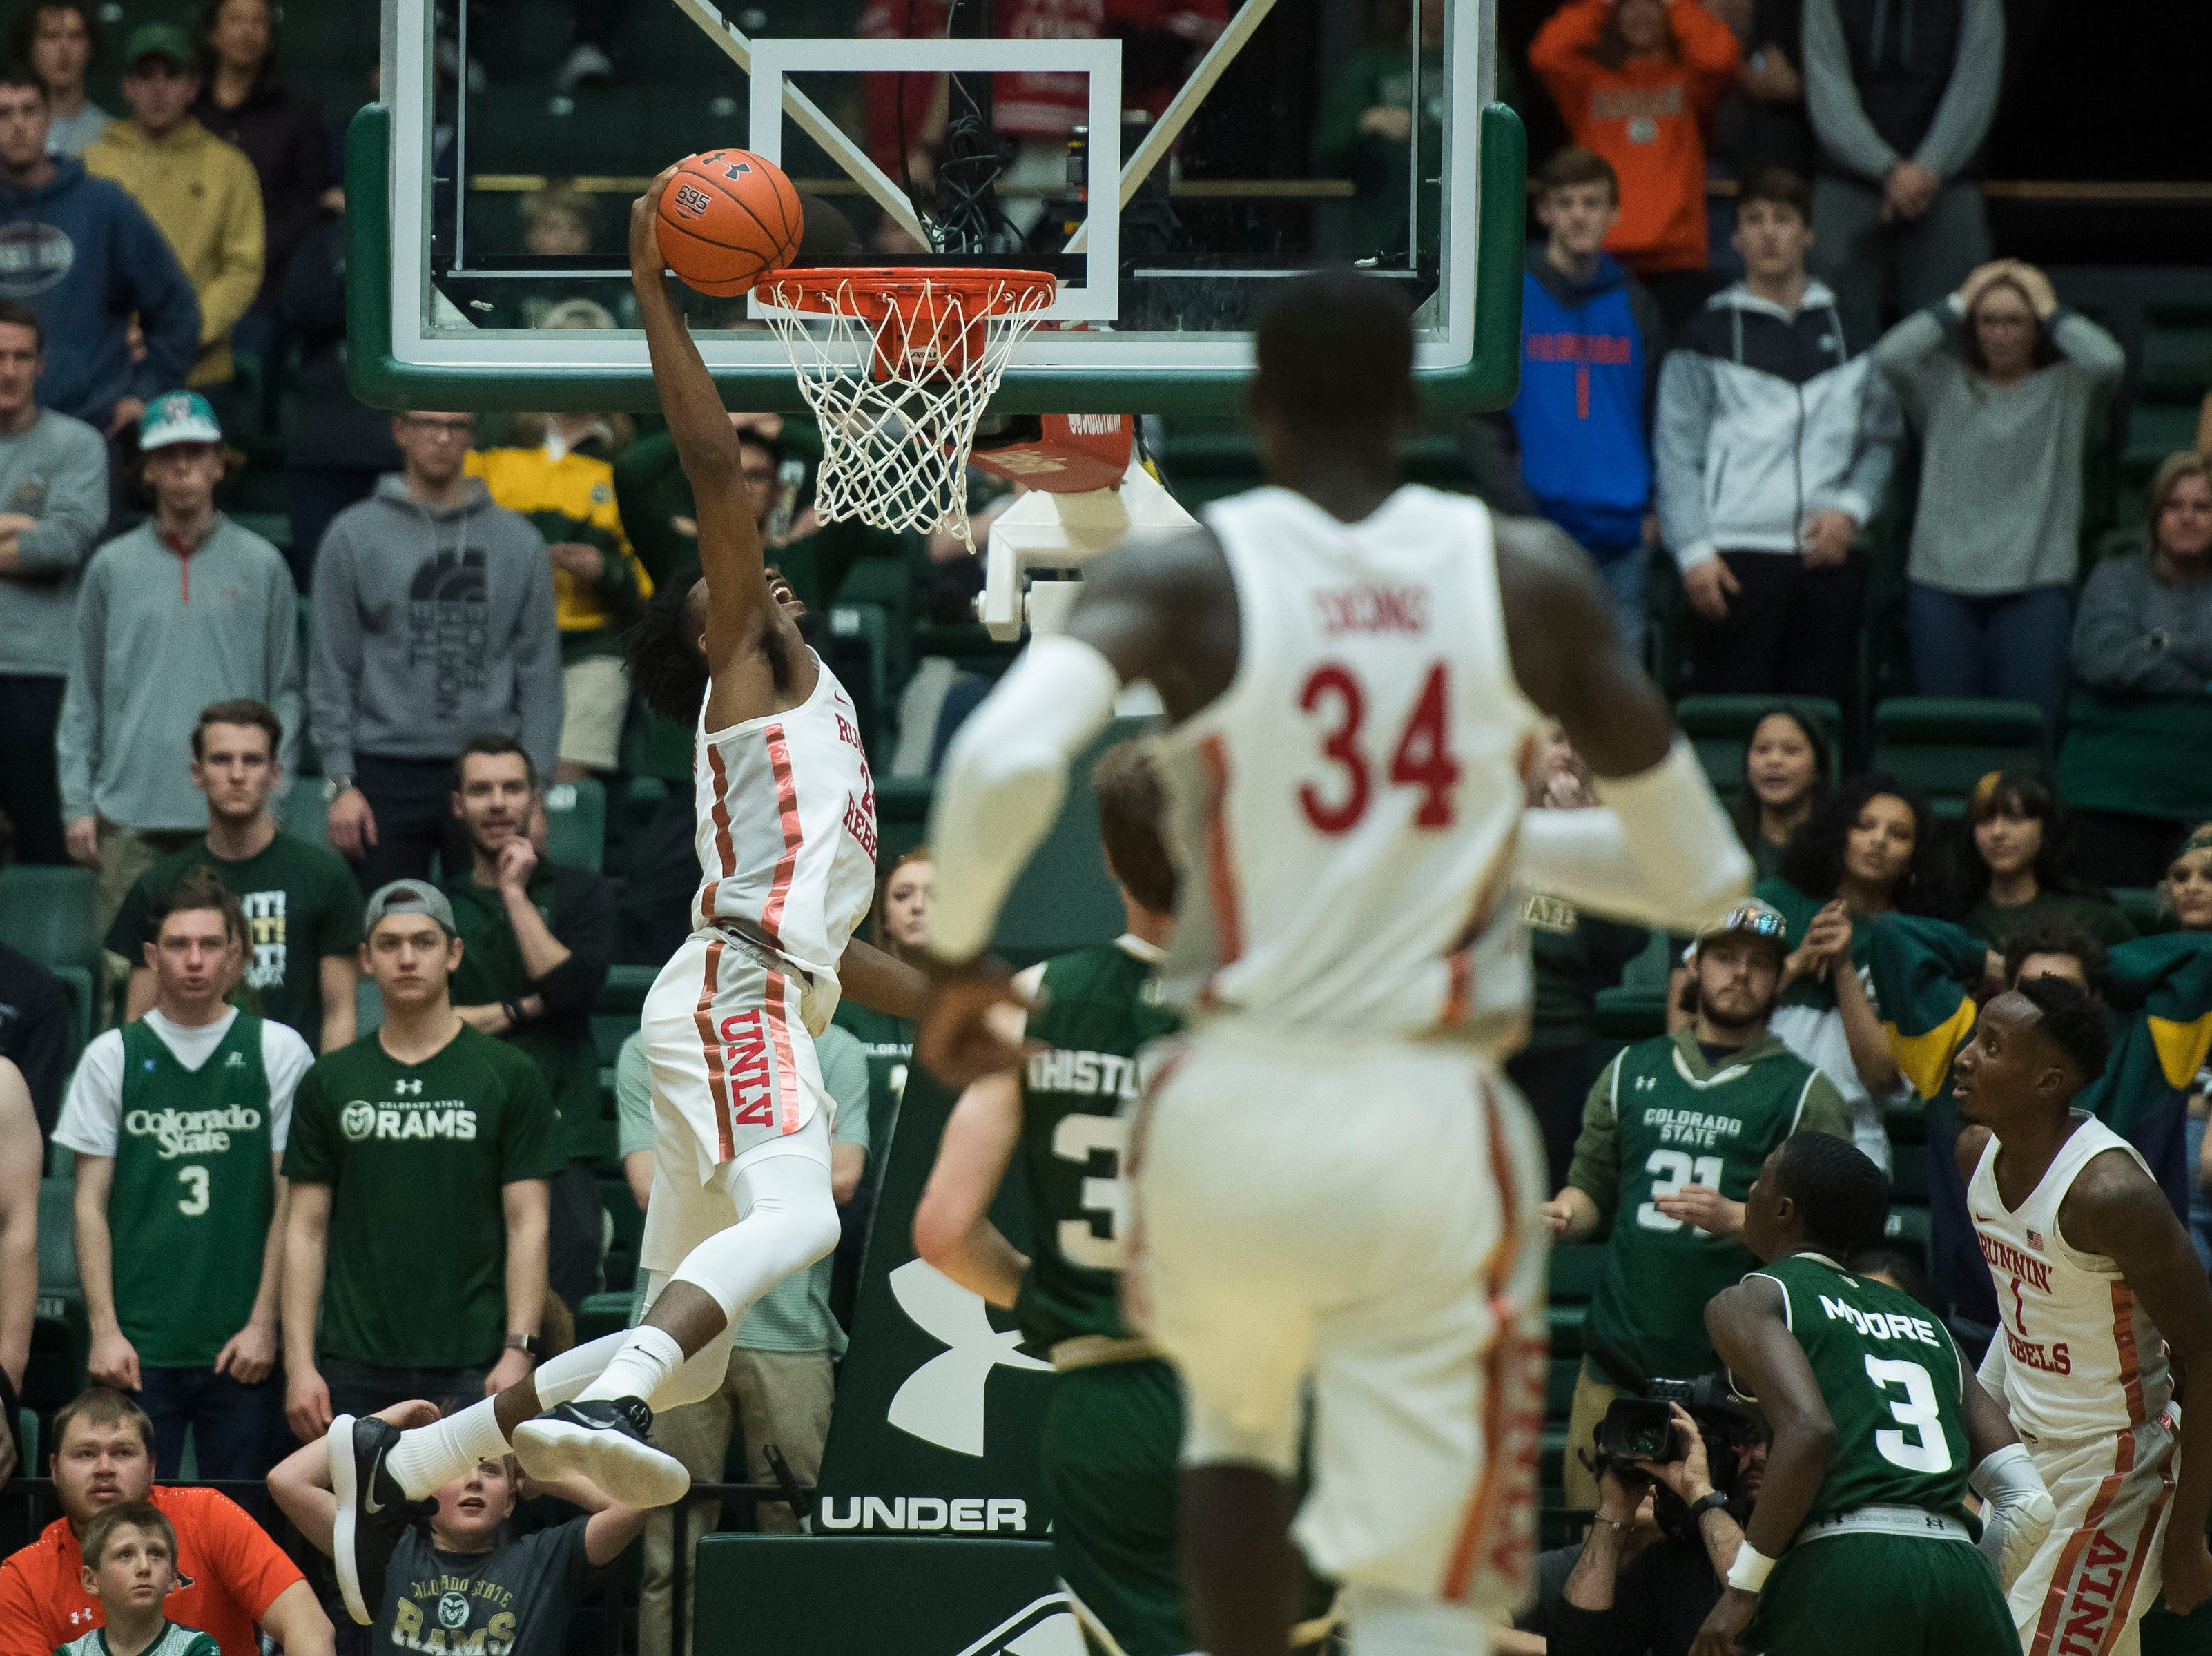 University of Nevada Las Vegas freshman forward Joel Ntambwe (24) misses the dunk during a game against Colorado State University on Saturday, March 9, 2019, at Moby Arena in Fort Collins, Colo.